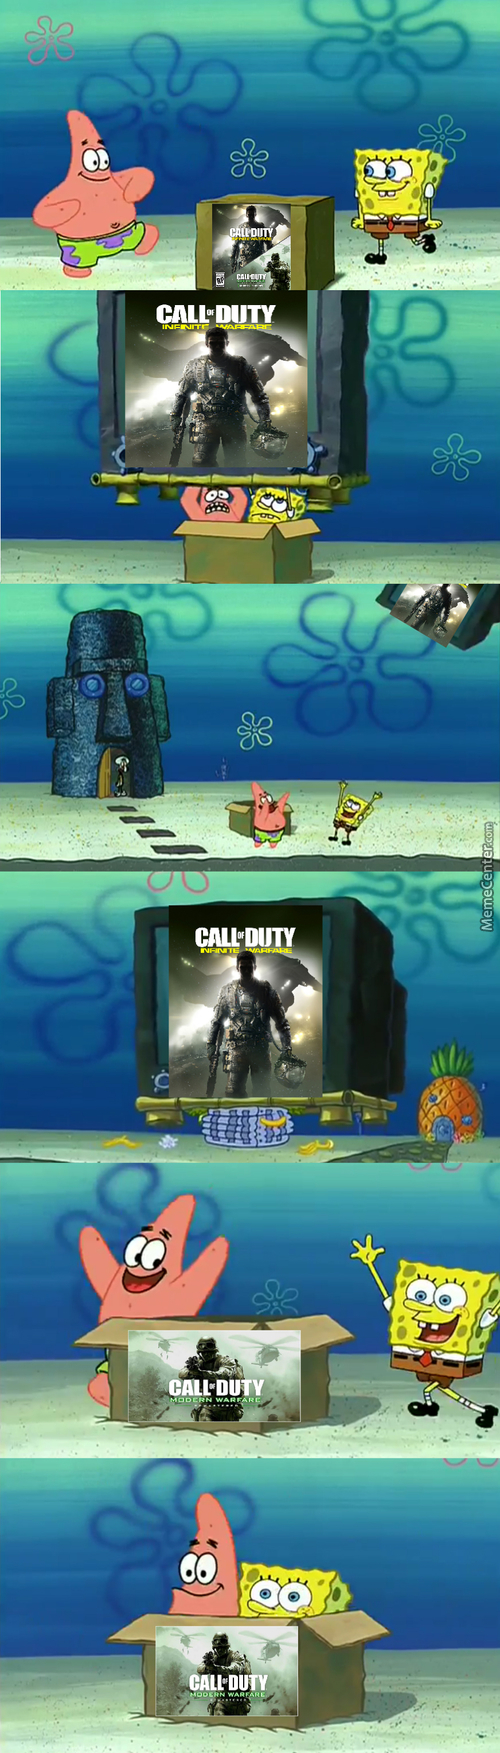 Buying The New Cod Game Be Like